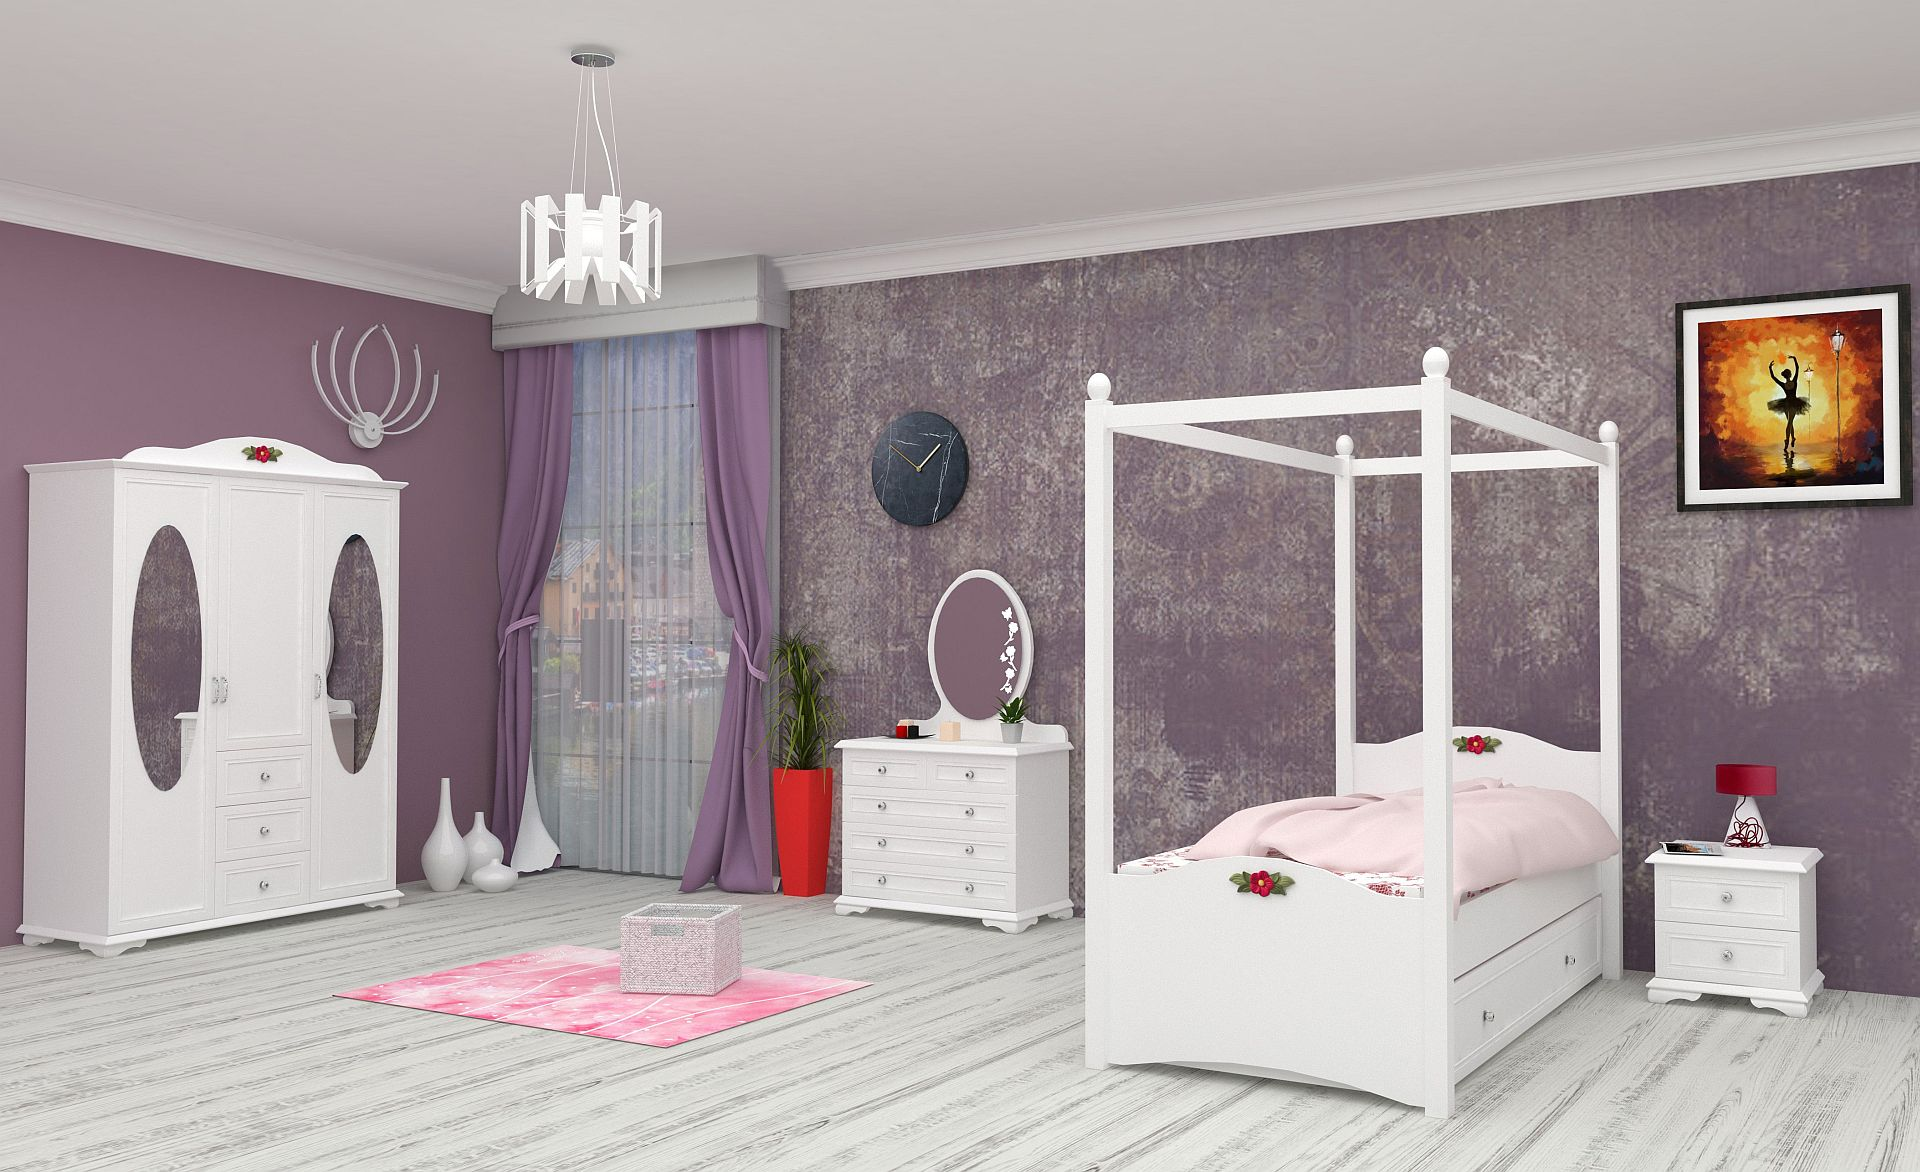 komplett kinderzimmer cindy 3 weiss sparset 5 tlg traum m. Black Bedroom Furniture Sets. Home Design Ideas